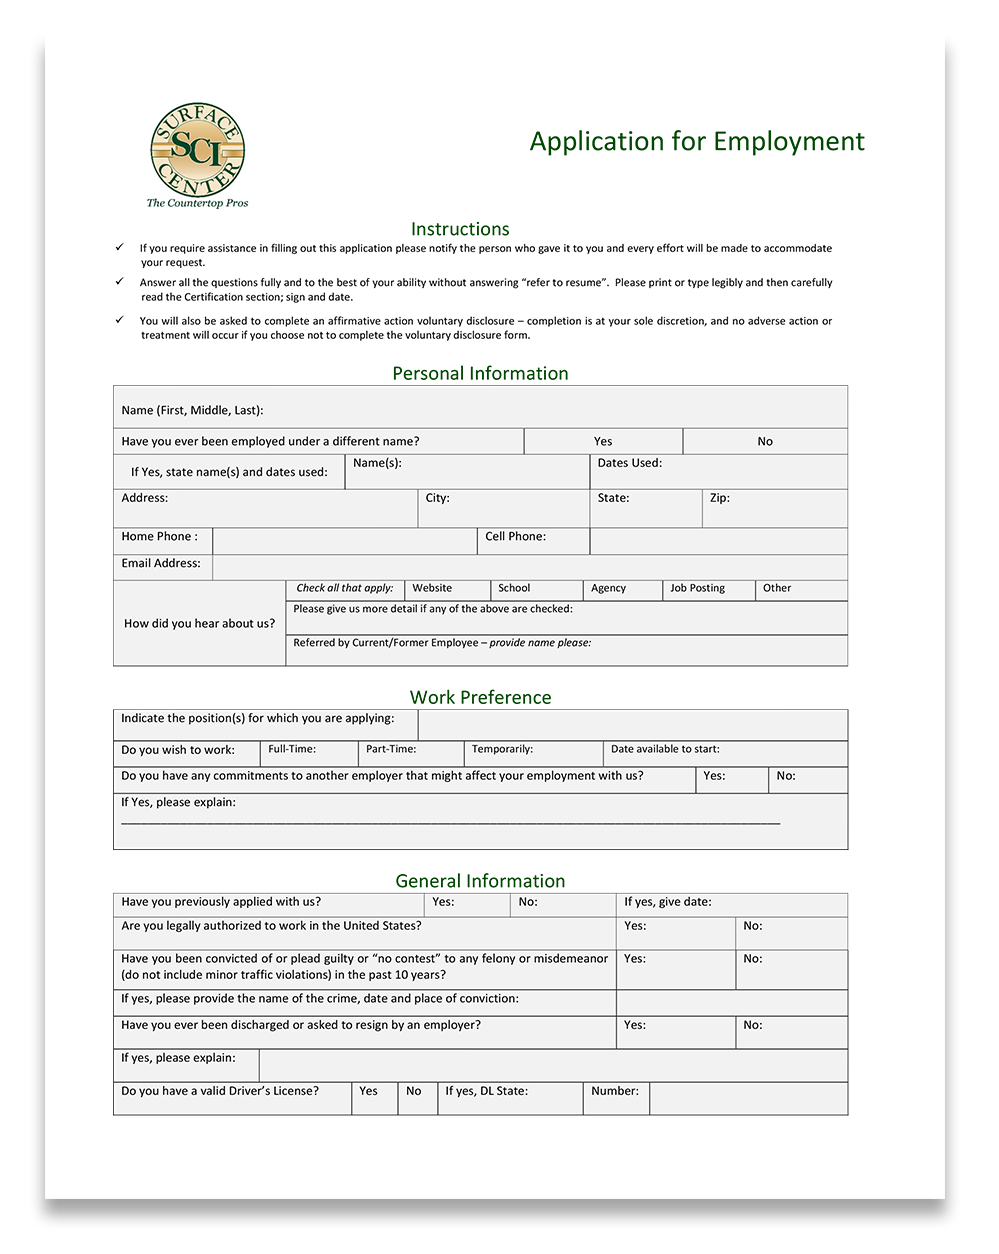 local 1 plumbers application 2016